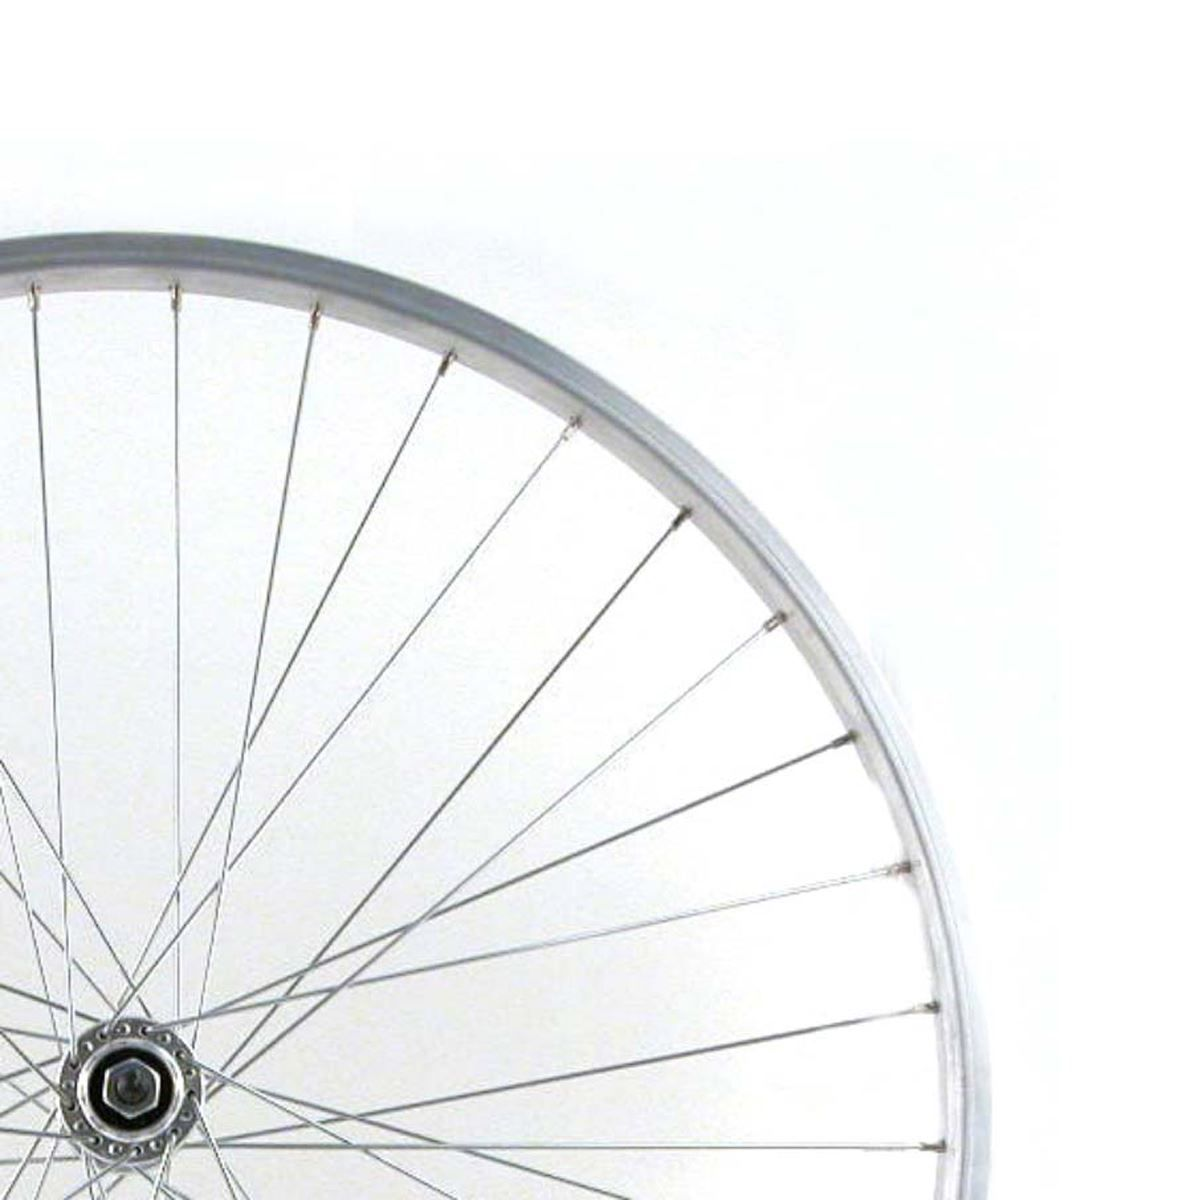 Wilkinson 27X1 1/4 Rear Wheel - Silver Single Wall - Solid Axle Screw On Hub Silver Spokes, 36 Hole: Silver 27 X 1-1/4